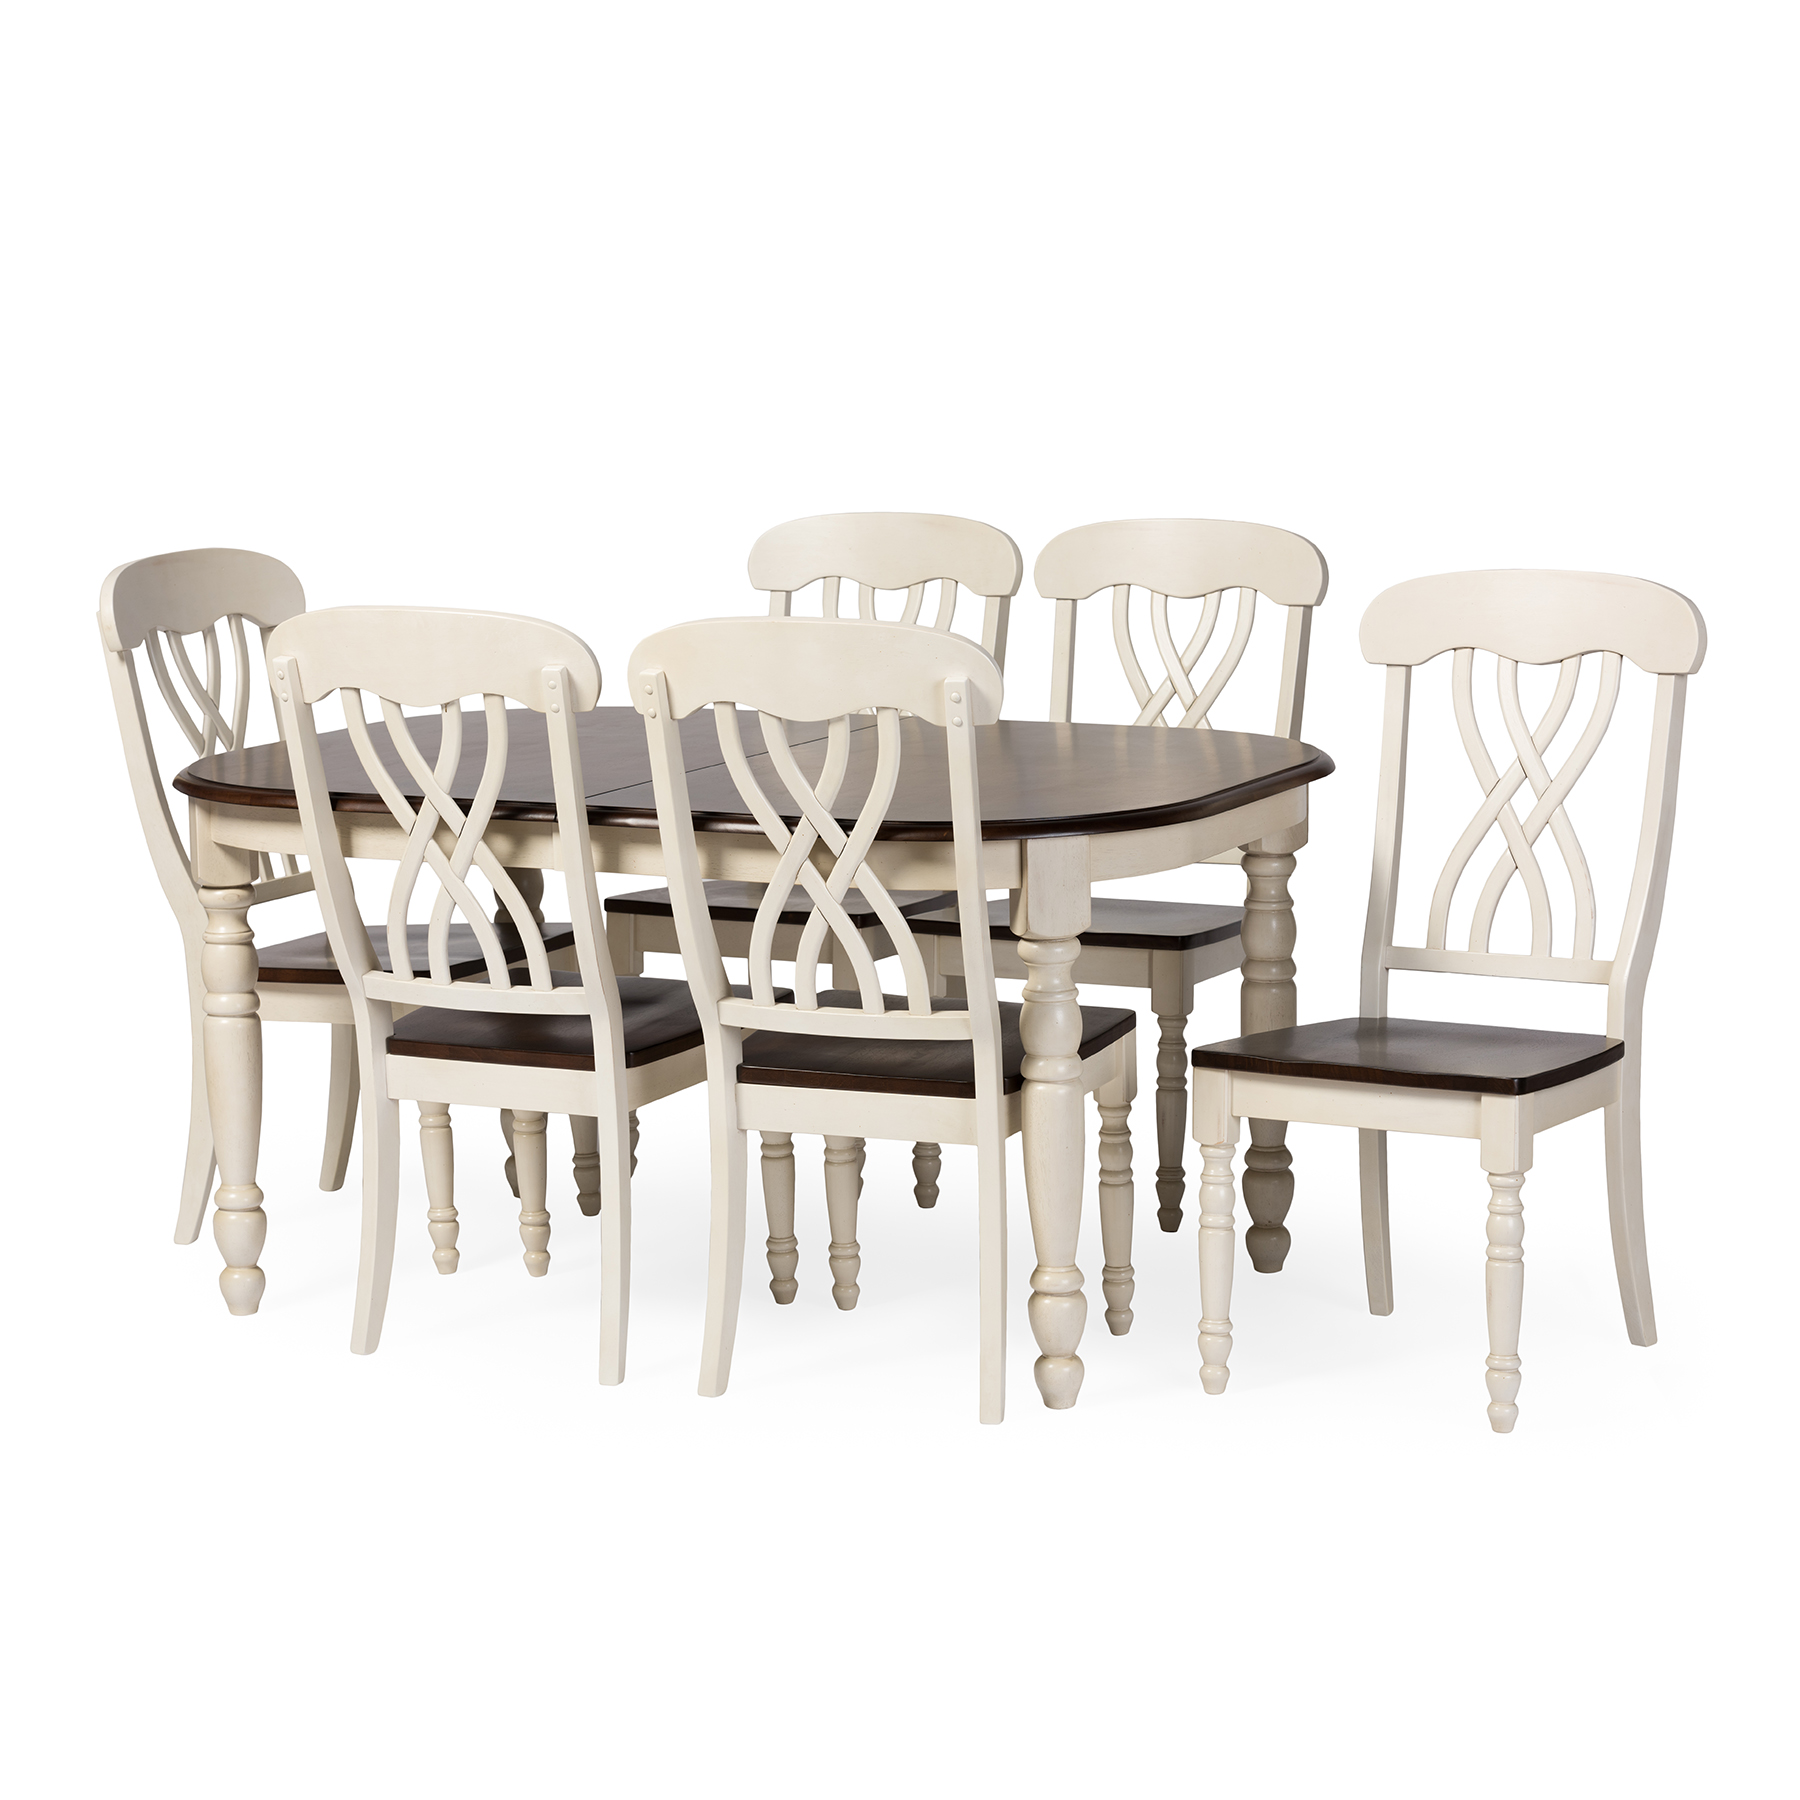 Product Reviews For Baxton Studio Newman Chic Country Cottage Antique Oak  Wood And Distressed White 7 Piece Dining Set With 5 Feet Extendable Dining  Table